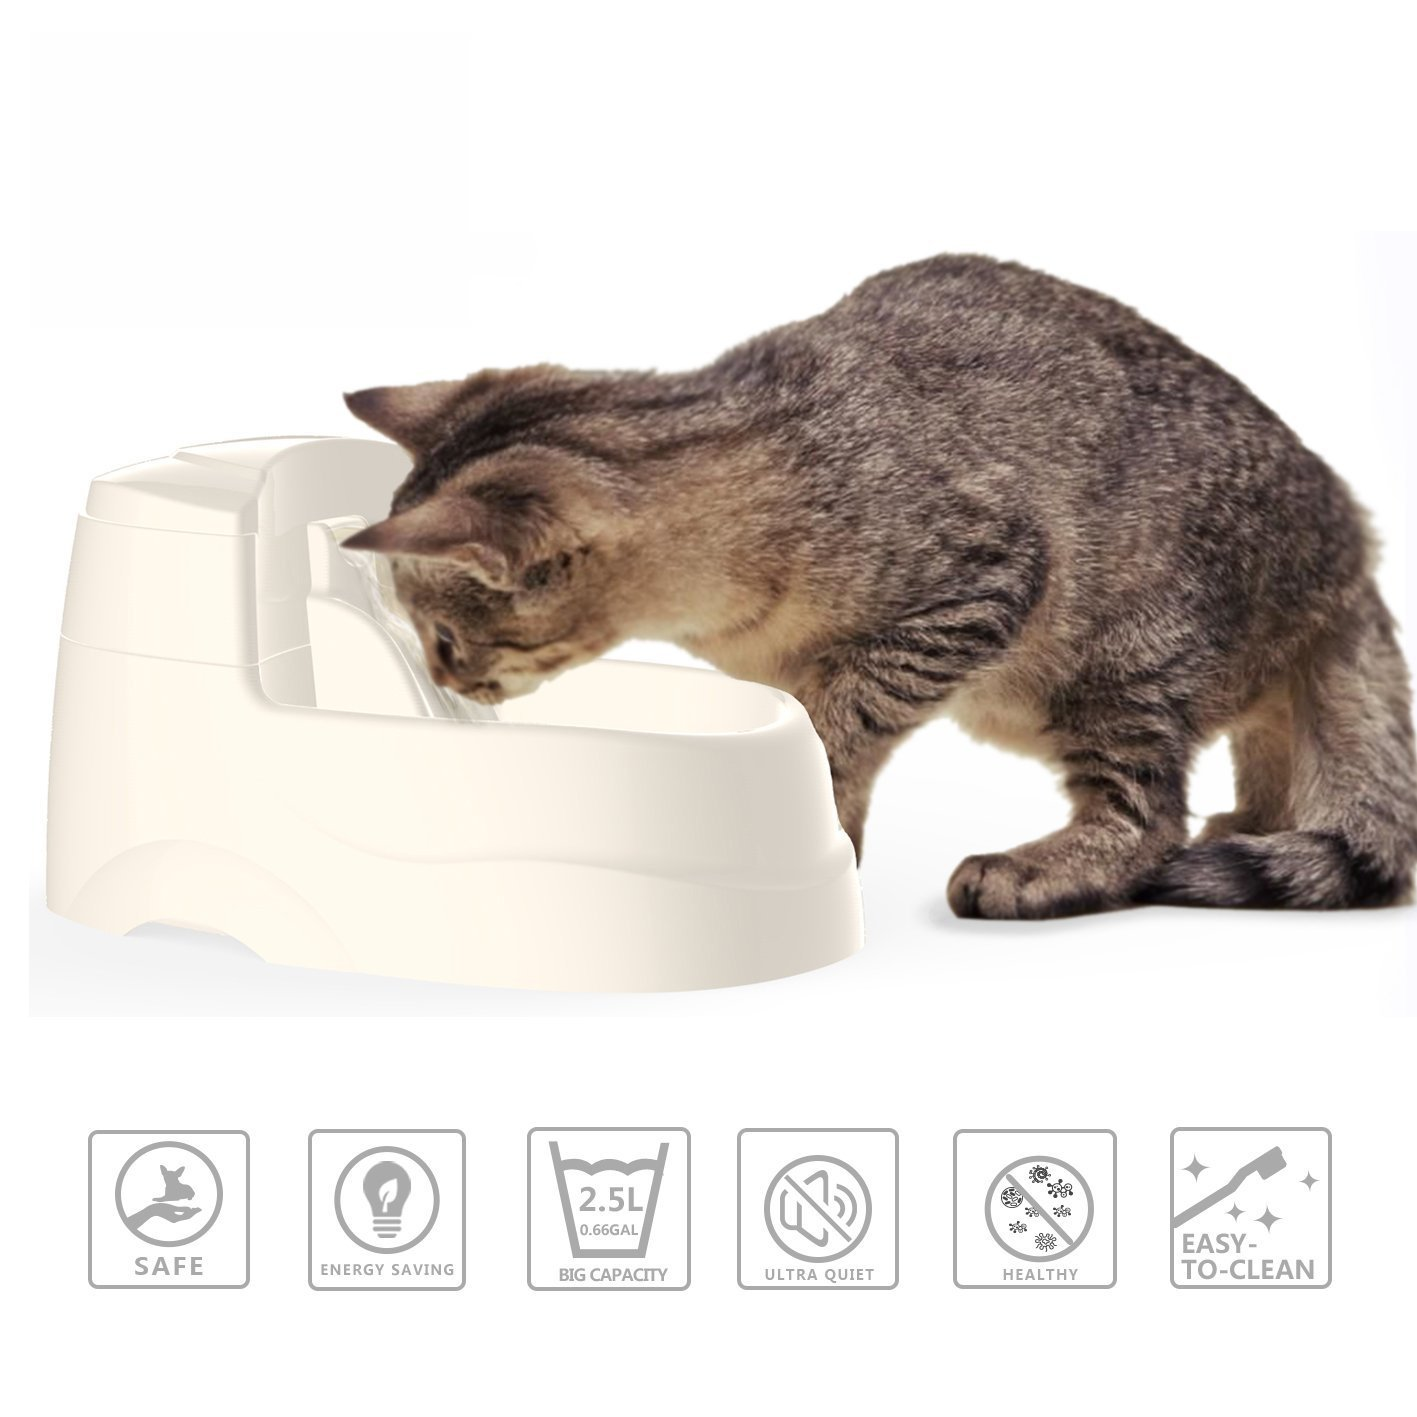 Dog and Cat Drinking Fountain, Pet Water Fountain with 5Pcs Water Filters and 2.5L (0.66 gal) Capacity